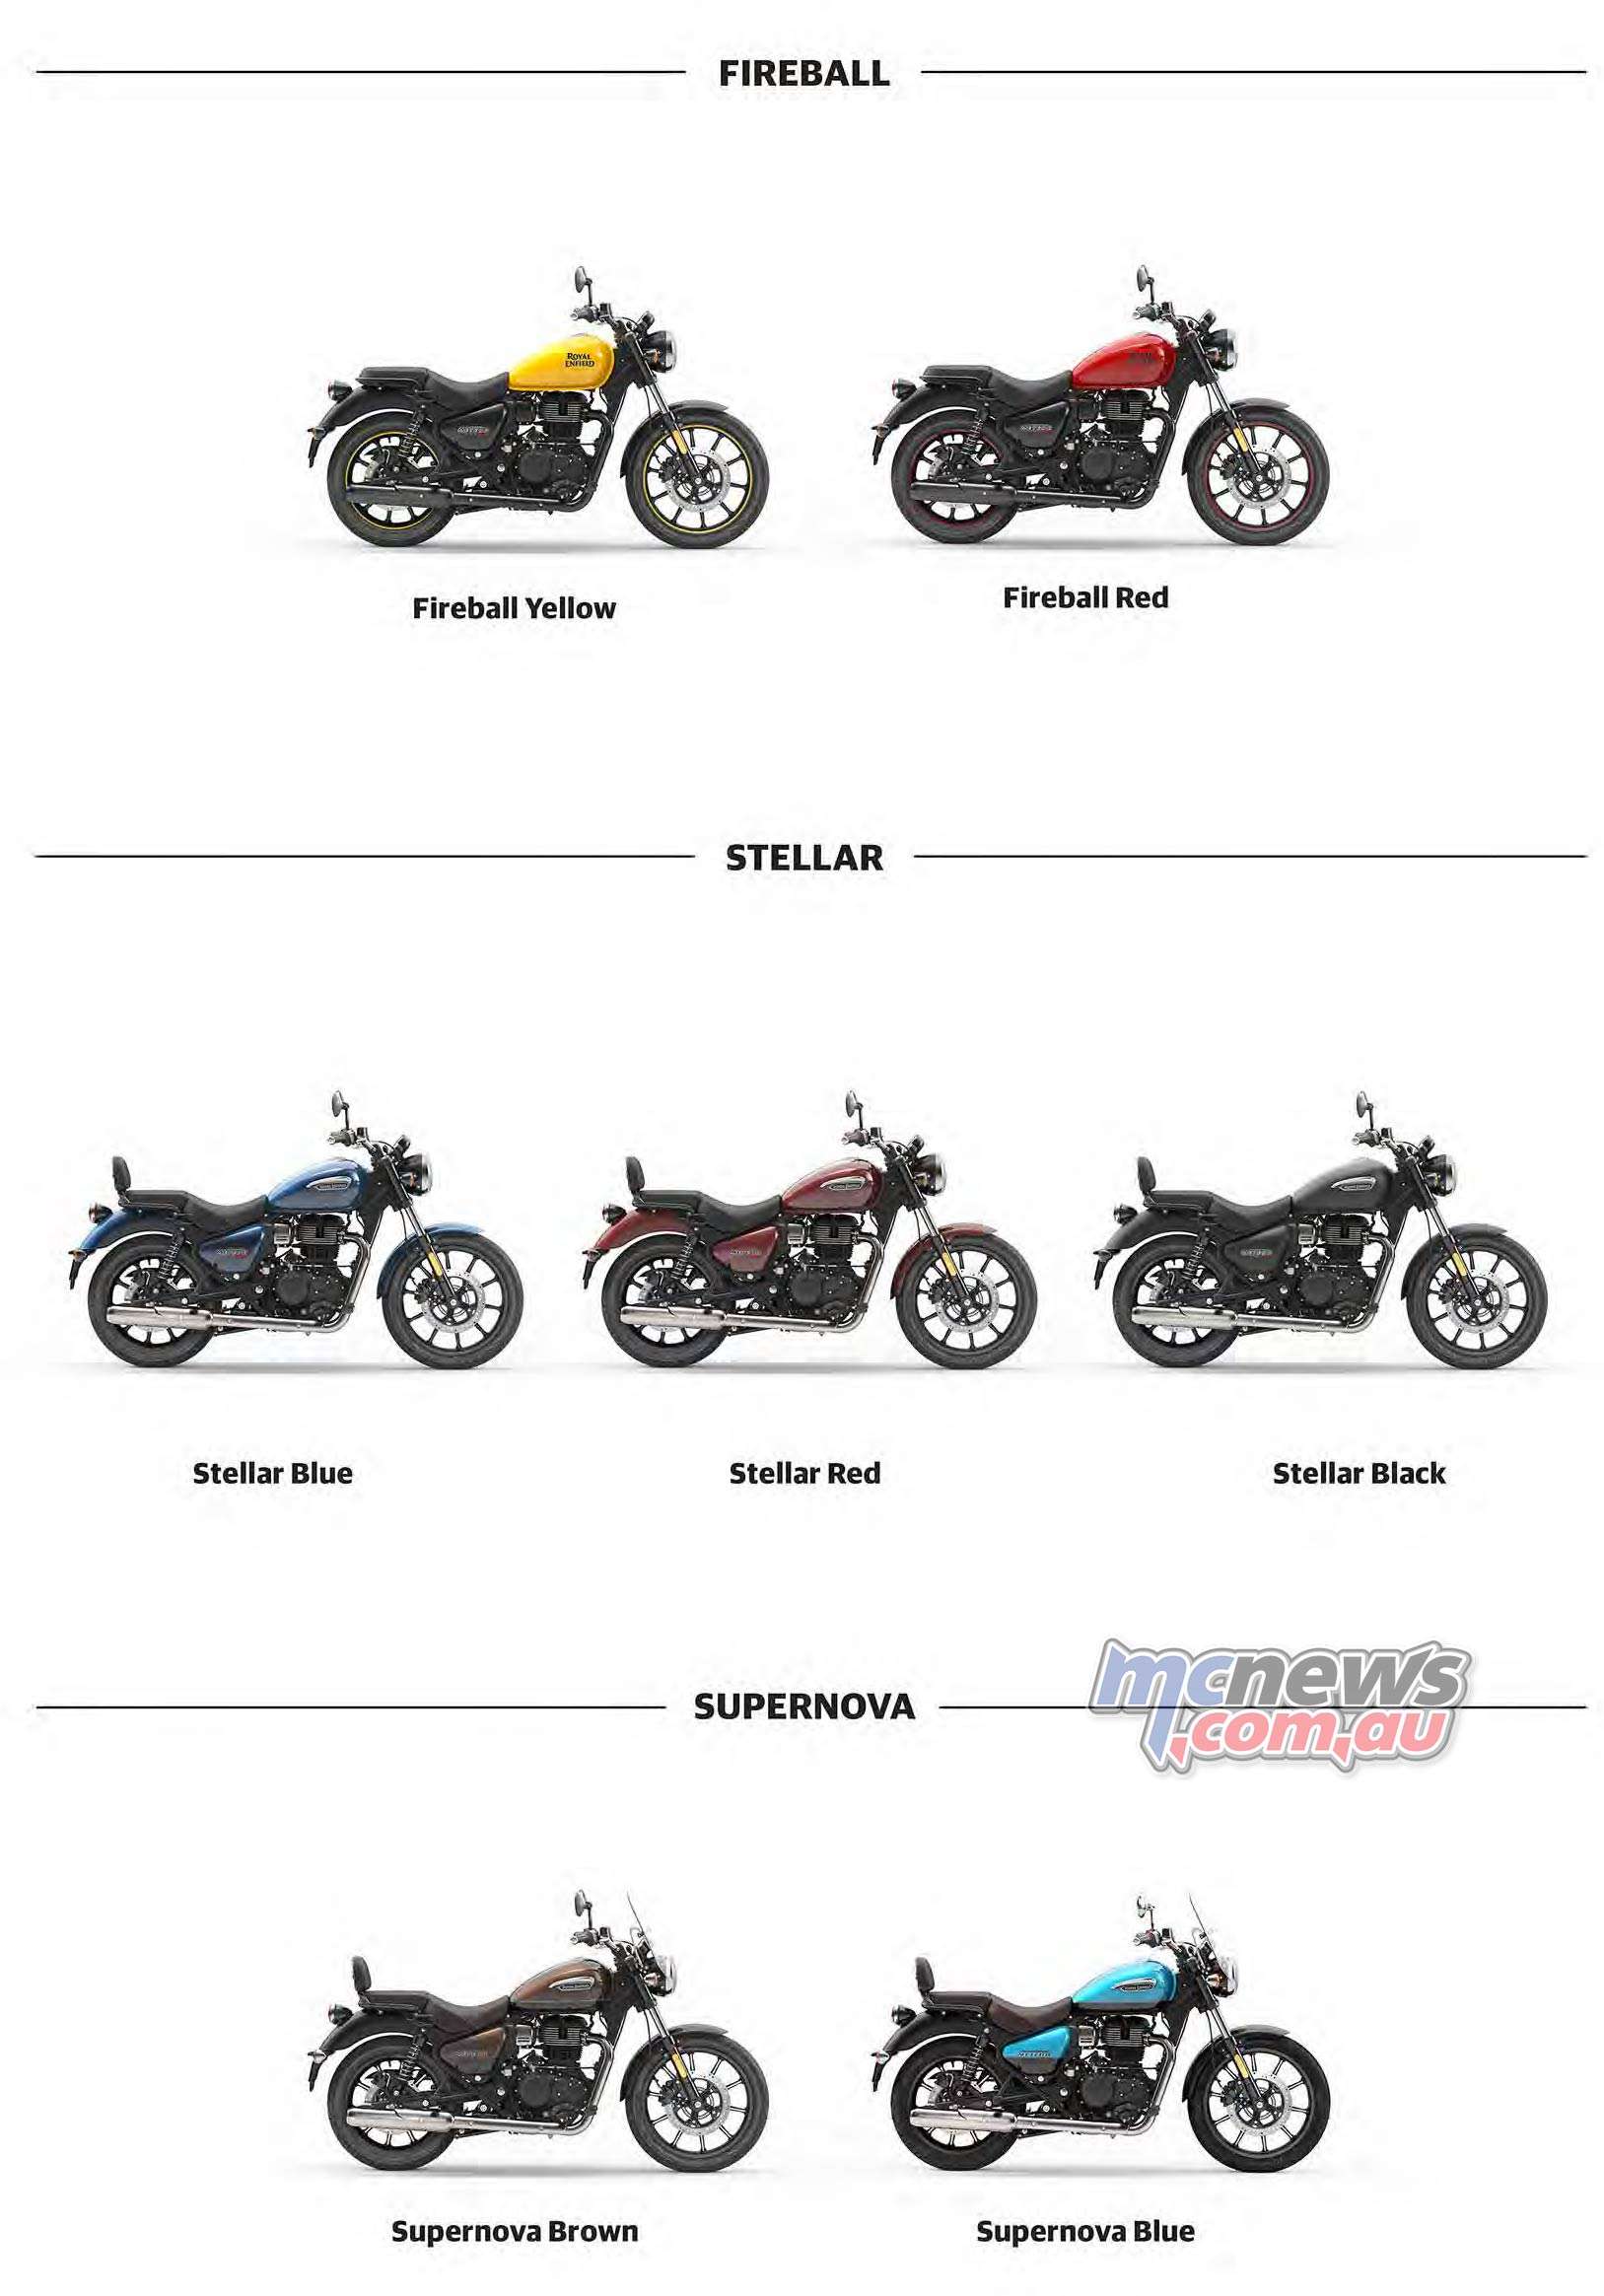 Royal Enfield Meteor 350 First Reveal Motorcycle News Sport And Reviews